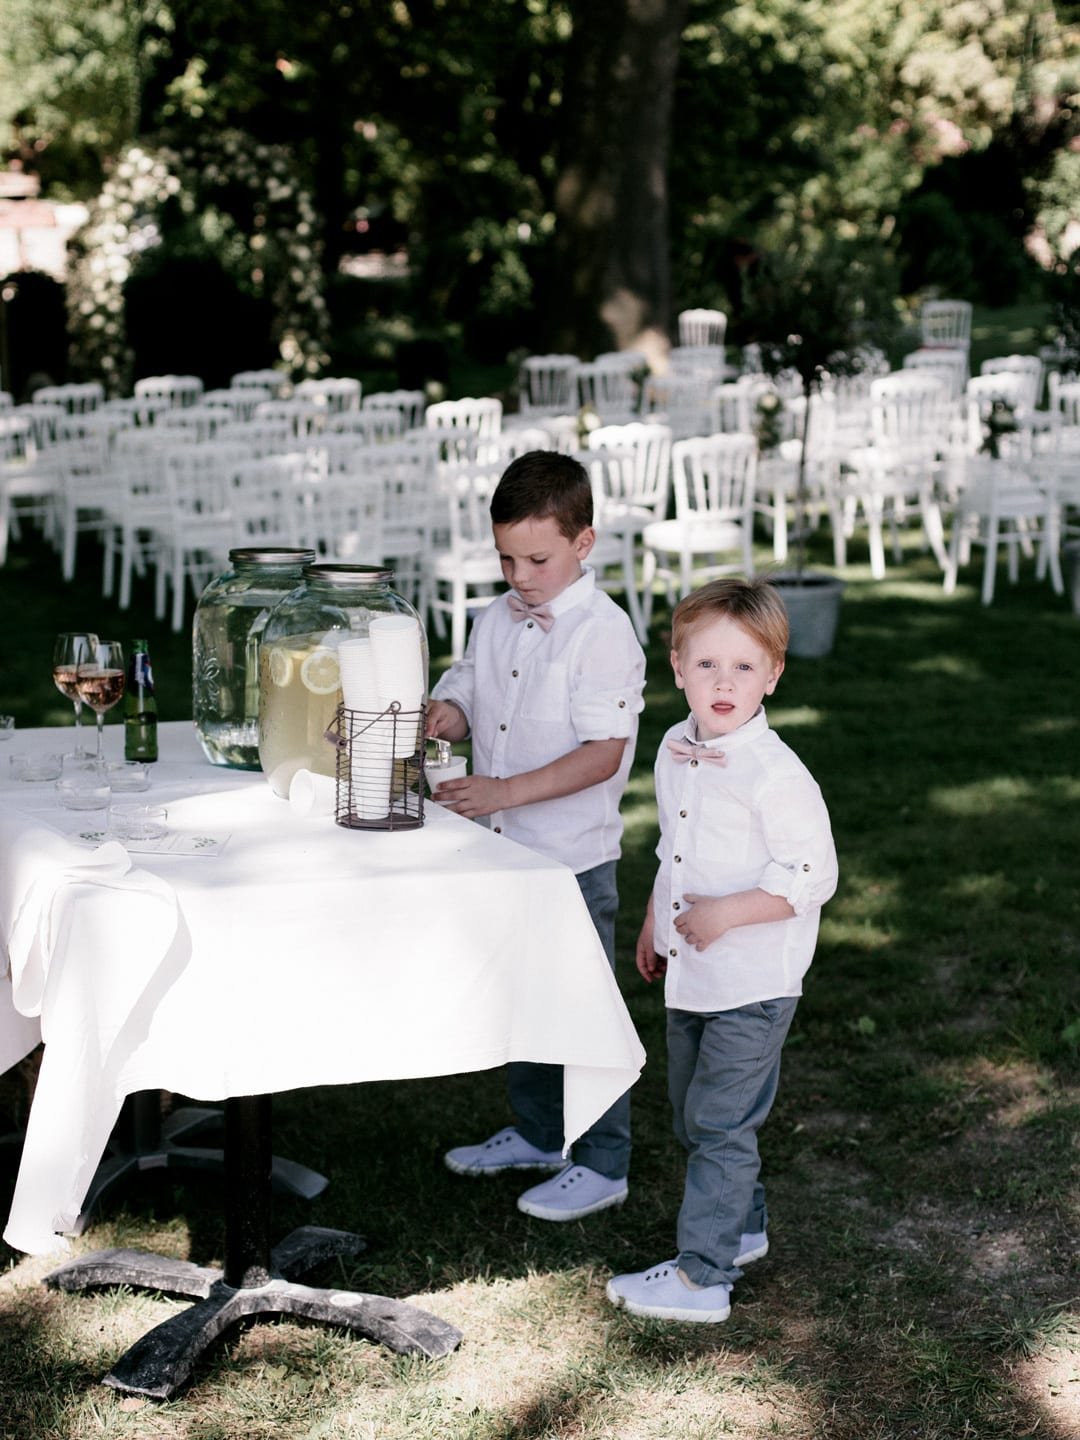 Our nephews sneaking a fresh lemonade